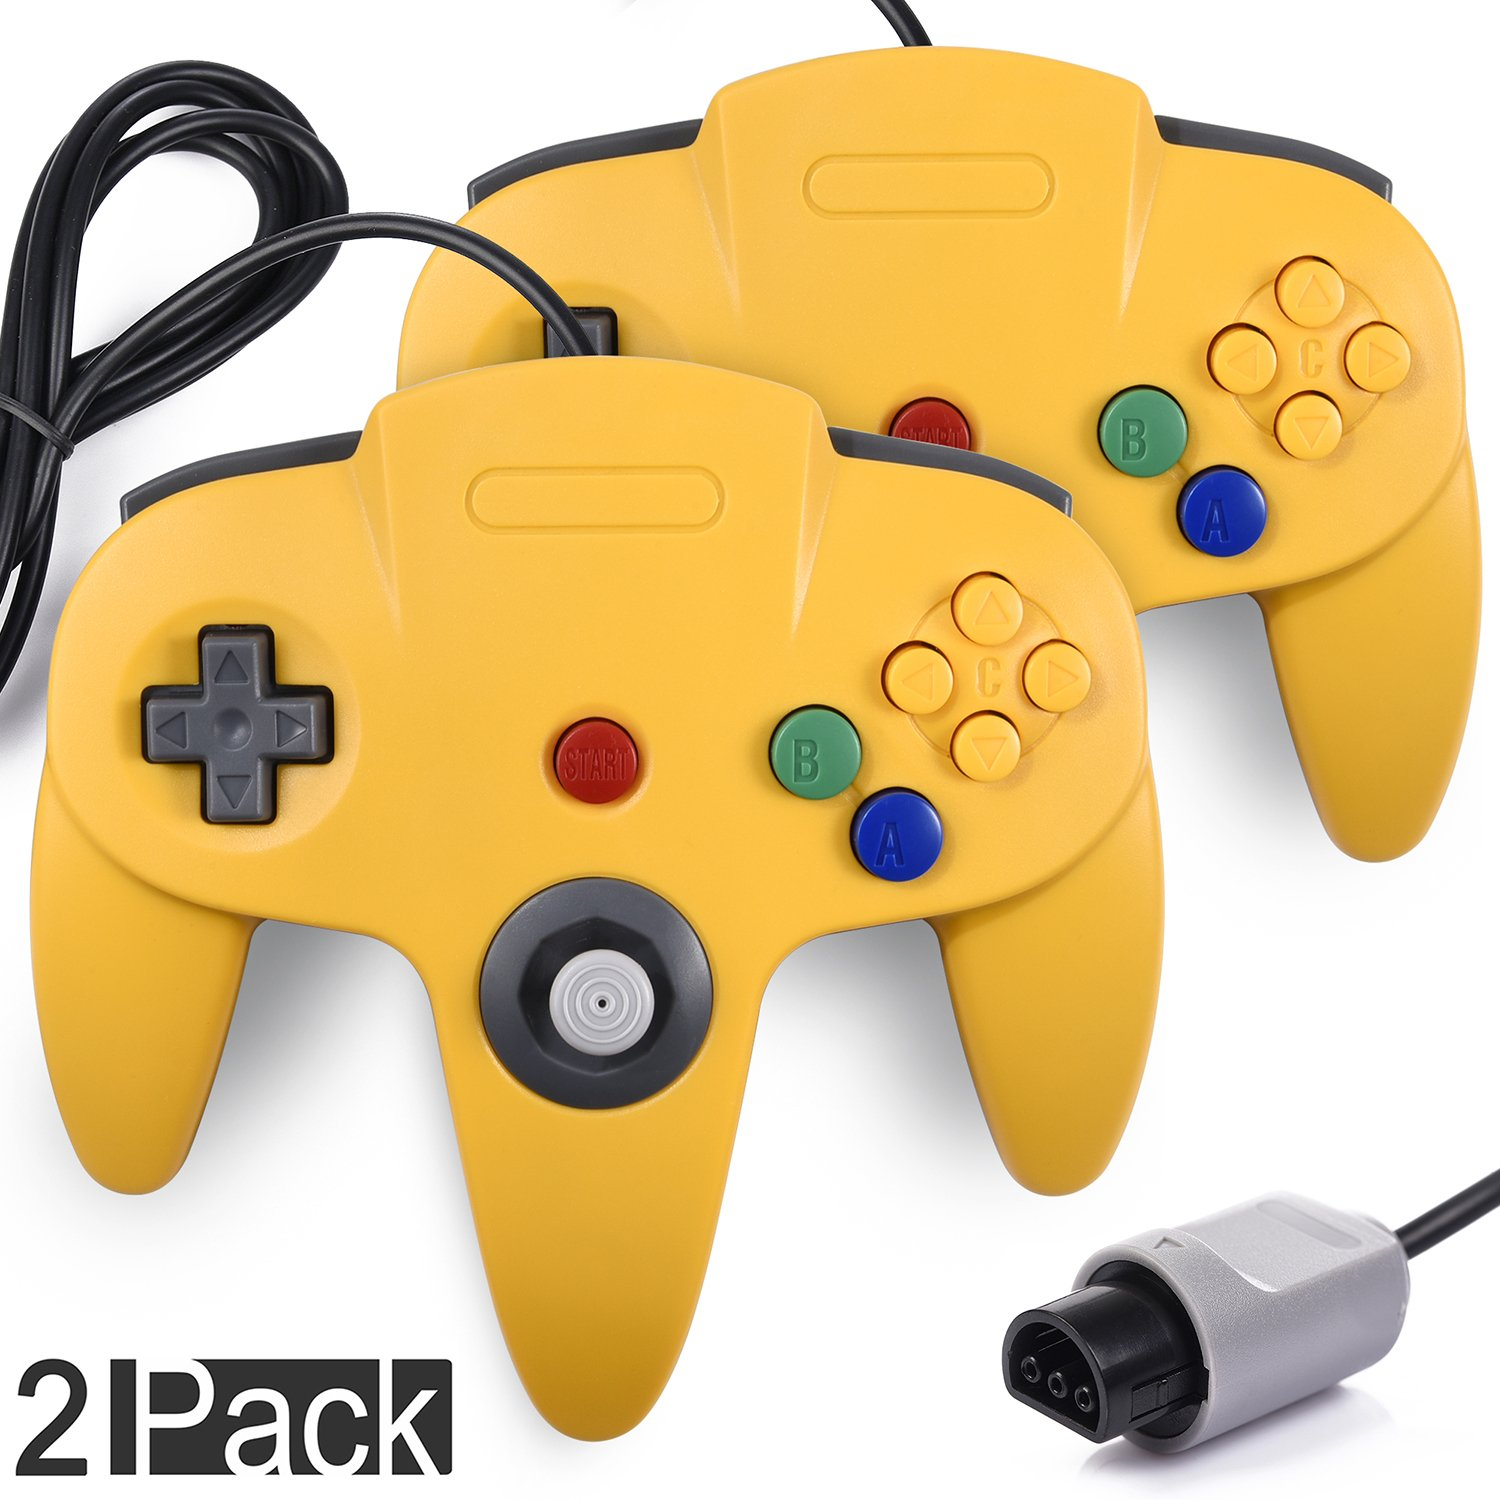 2 Pack N64 Gaming Classic Controller, miadore Retro N64 Gaming Gamepad Joystick Double Colored Joypad for N64 System Home Video Game Console by miadore (Image #1)